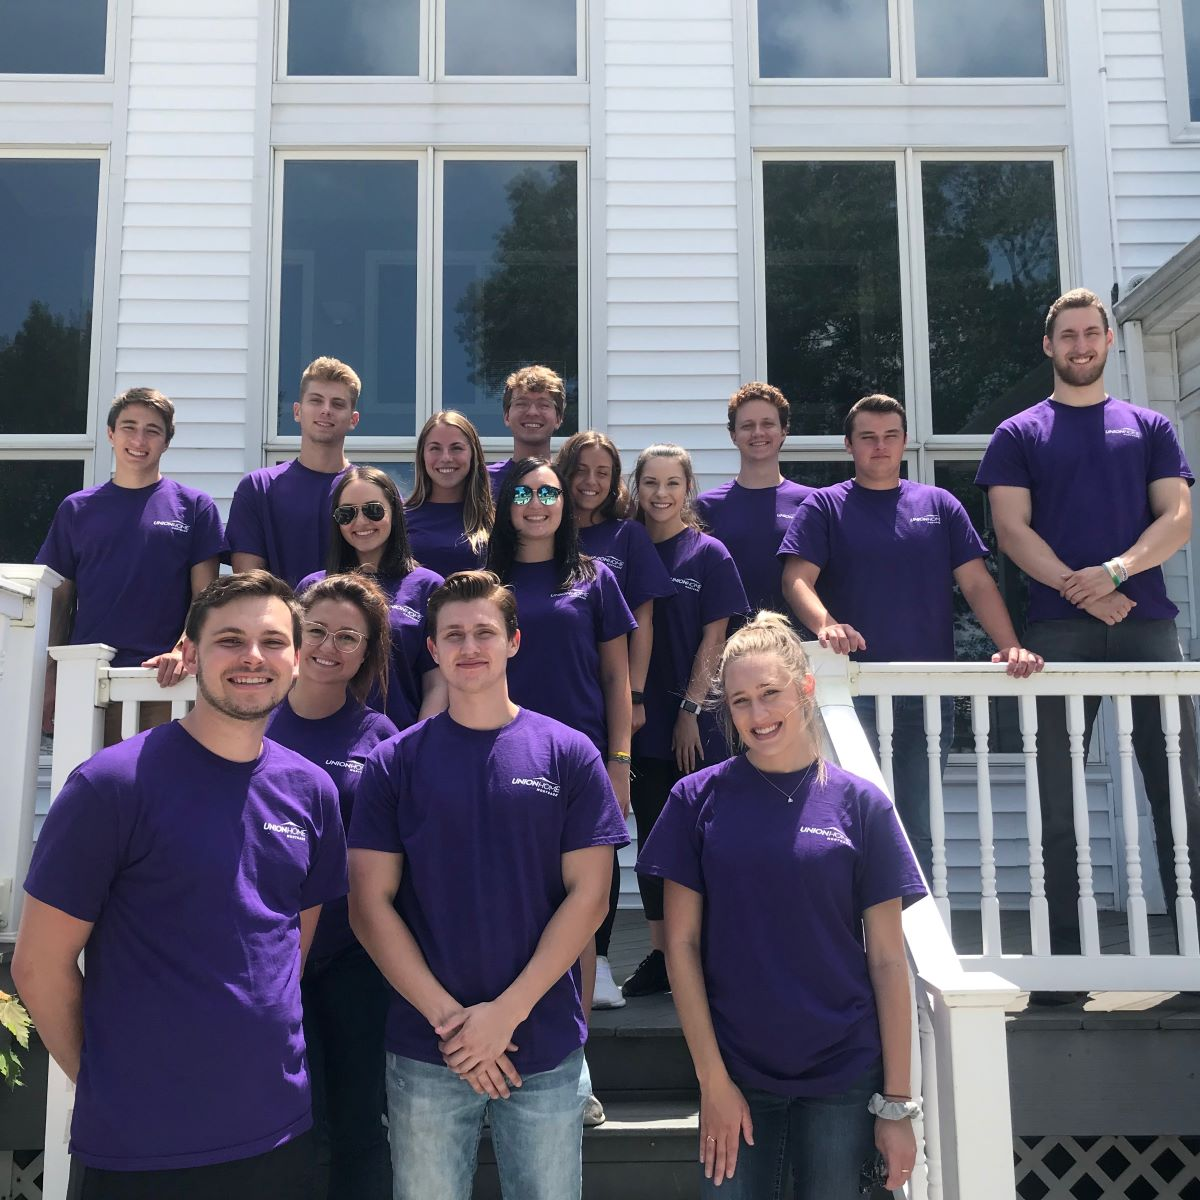 A group of interns in purple UHM volunteers shirts